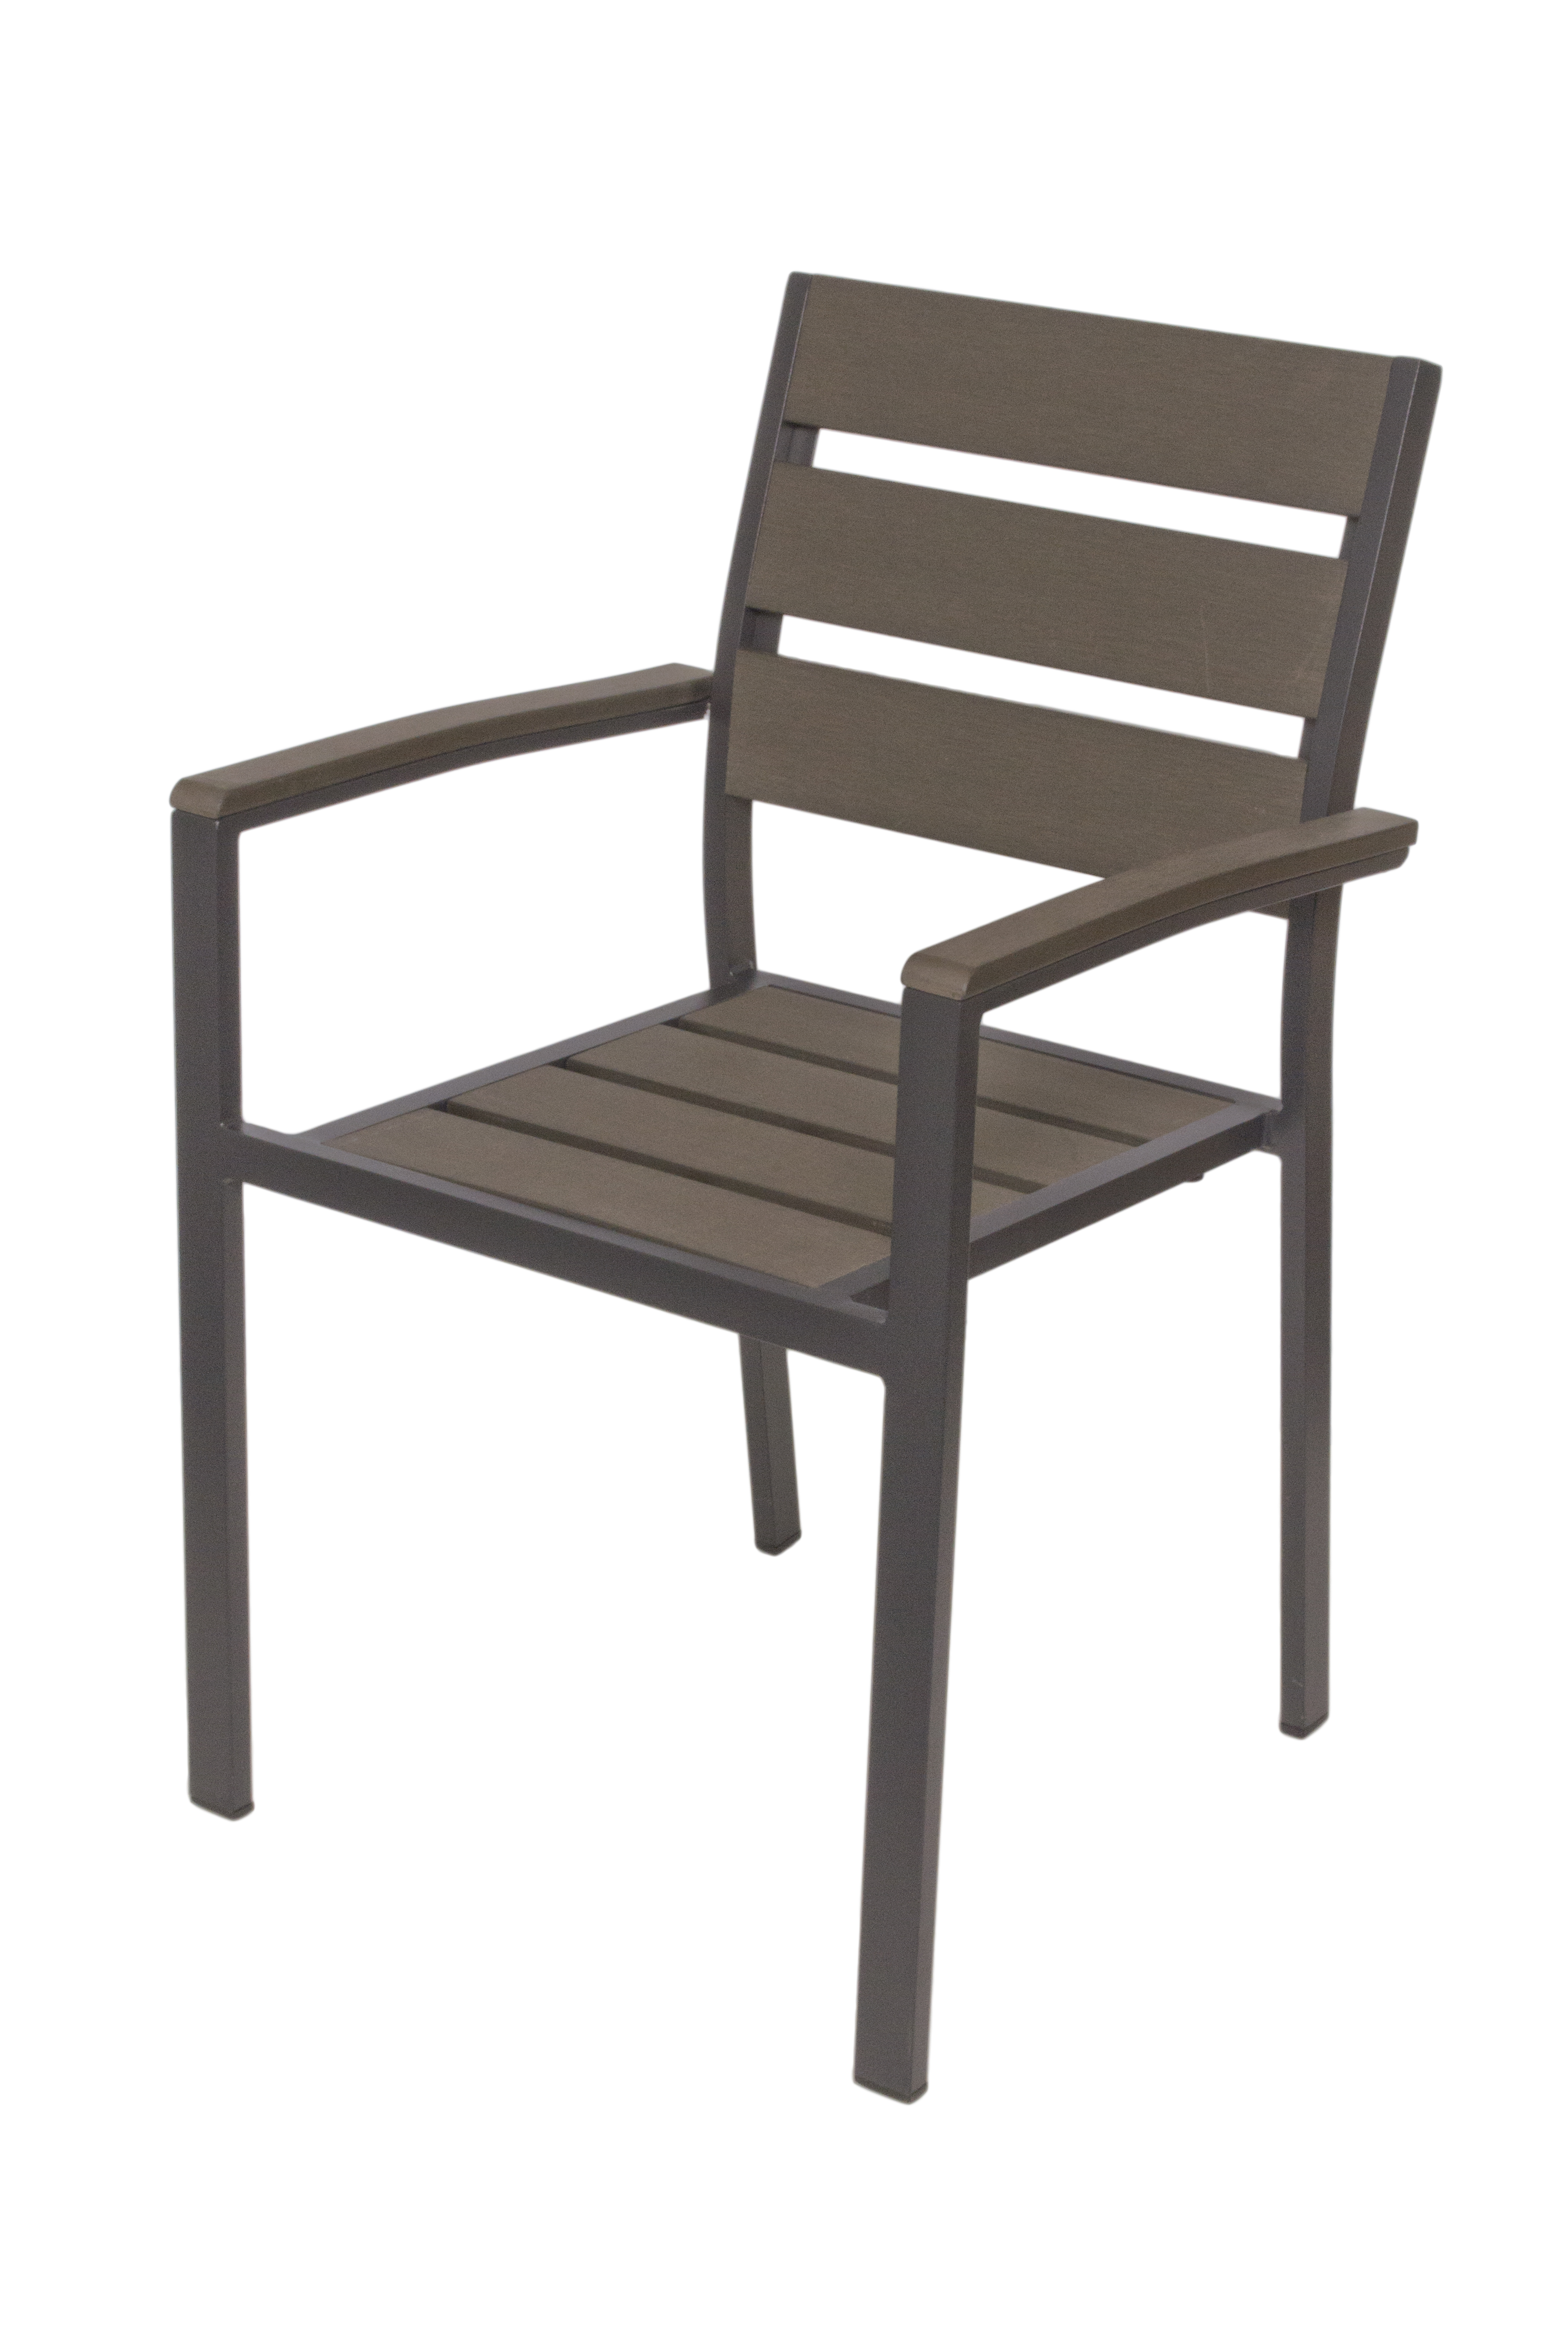 Outdoor chairs perma wood arm chair